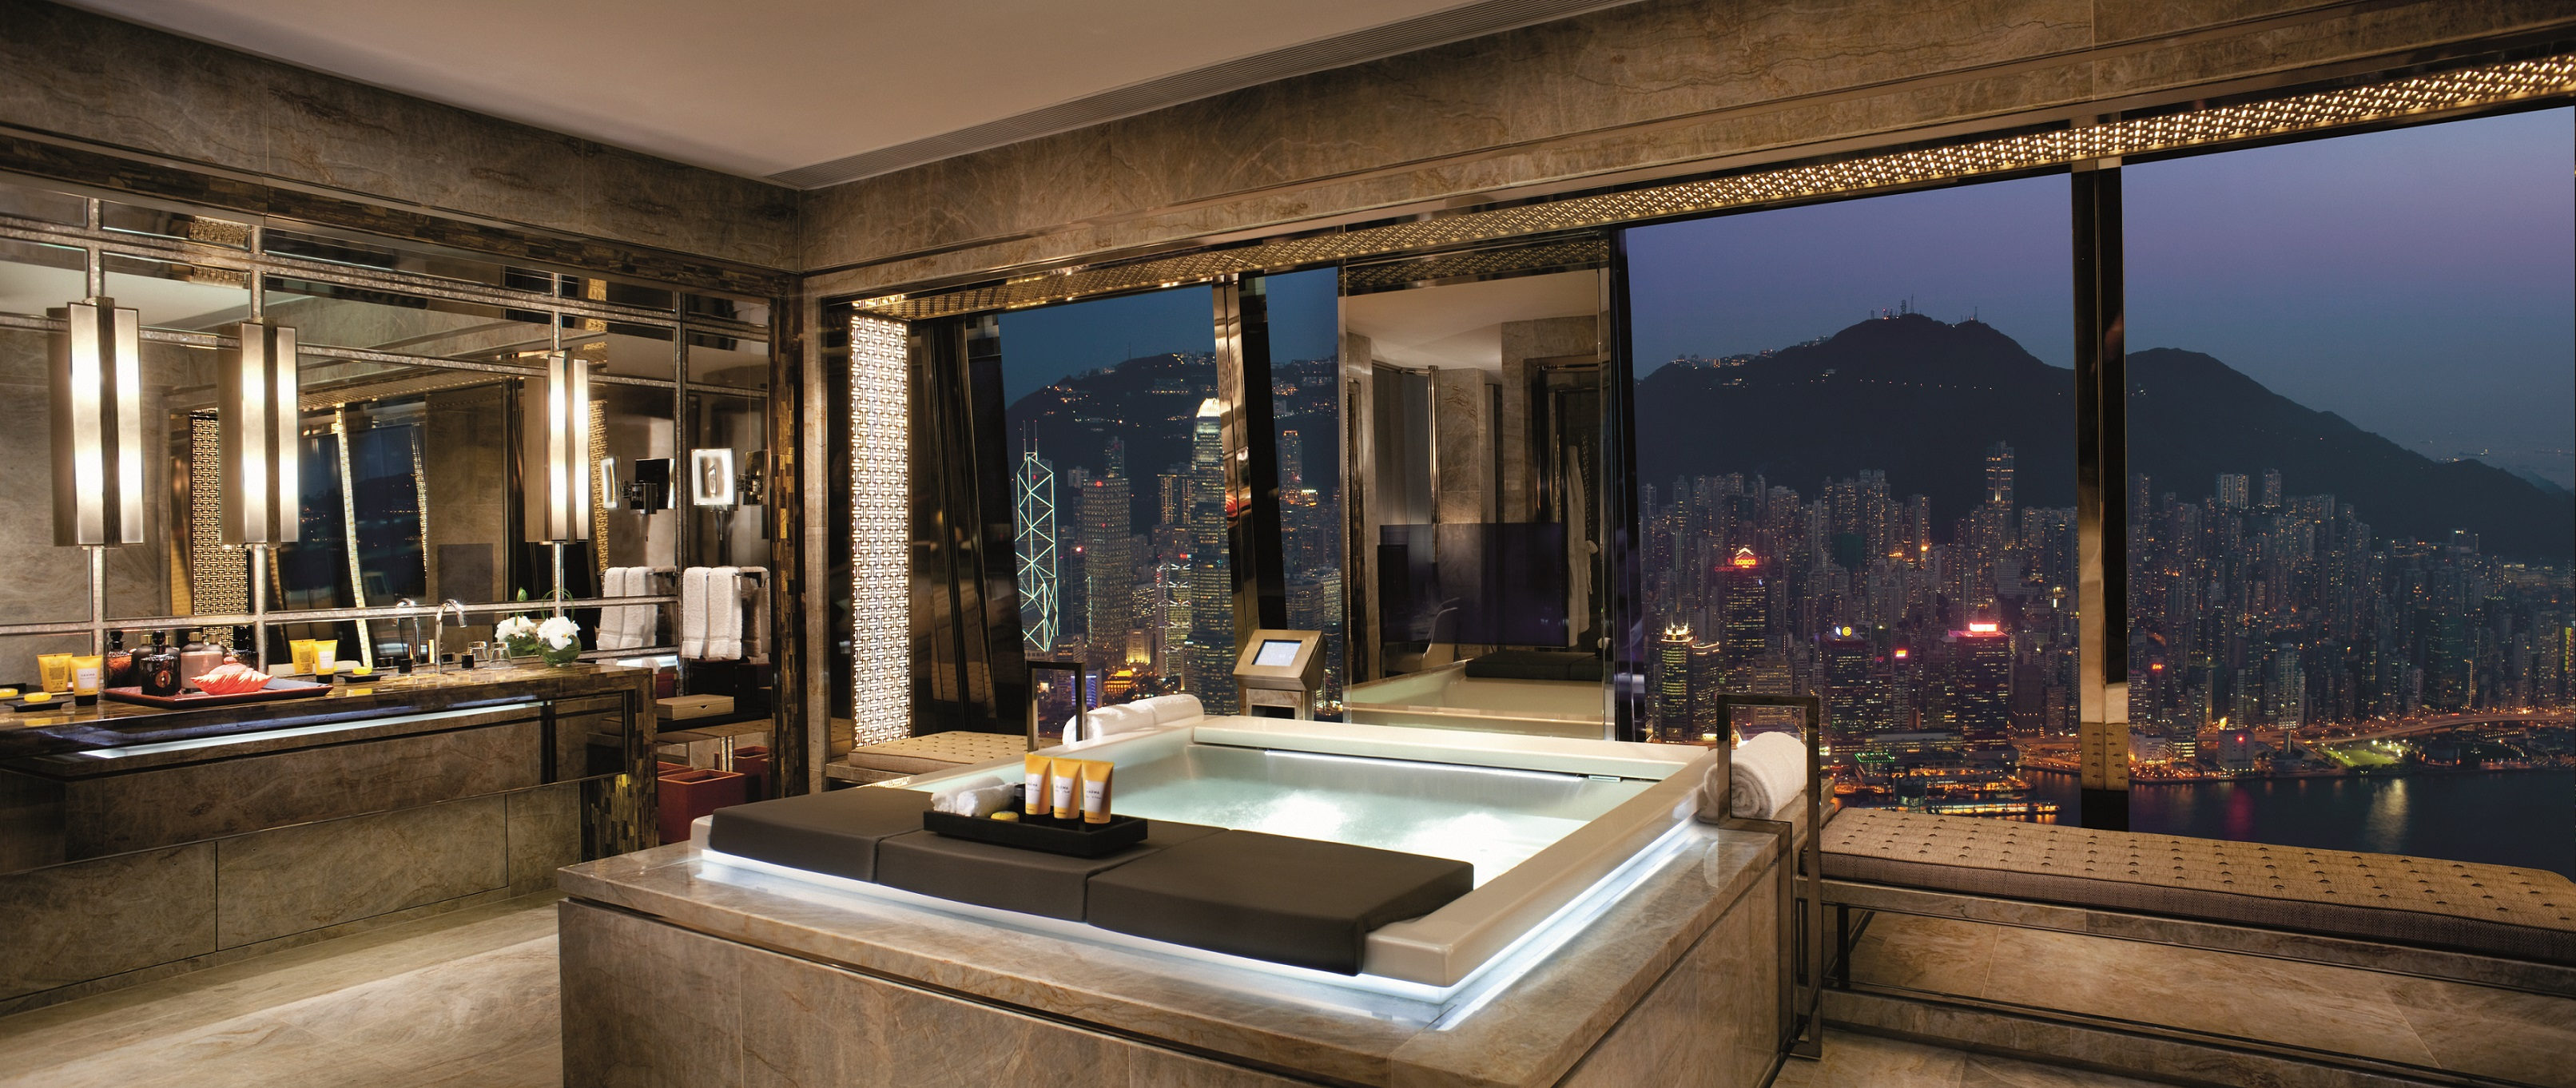 the ritz carlton suite victoria harbour luxury bathrooms - Luxury Bathroom